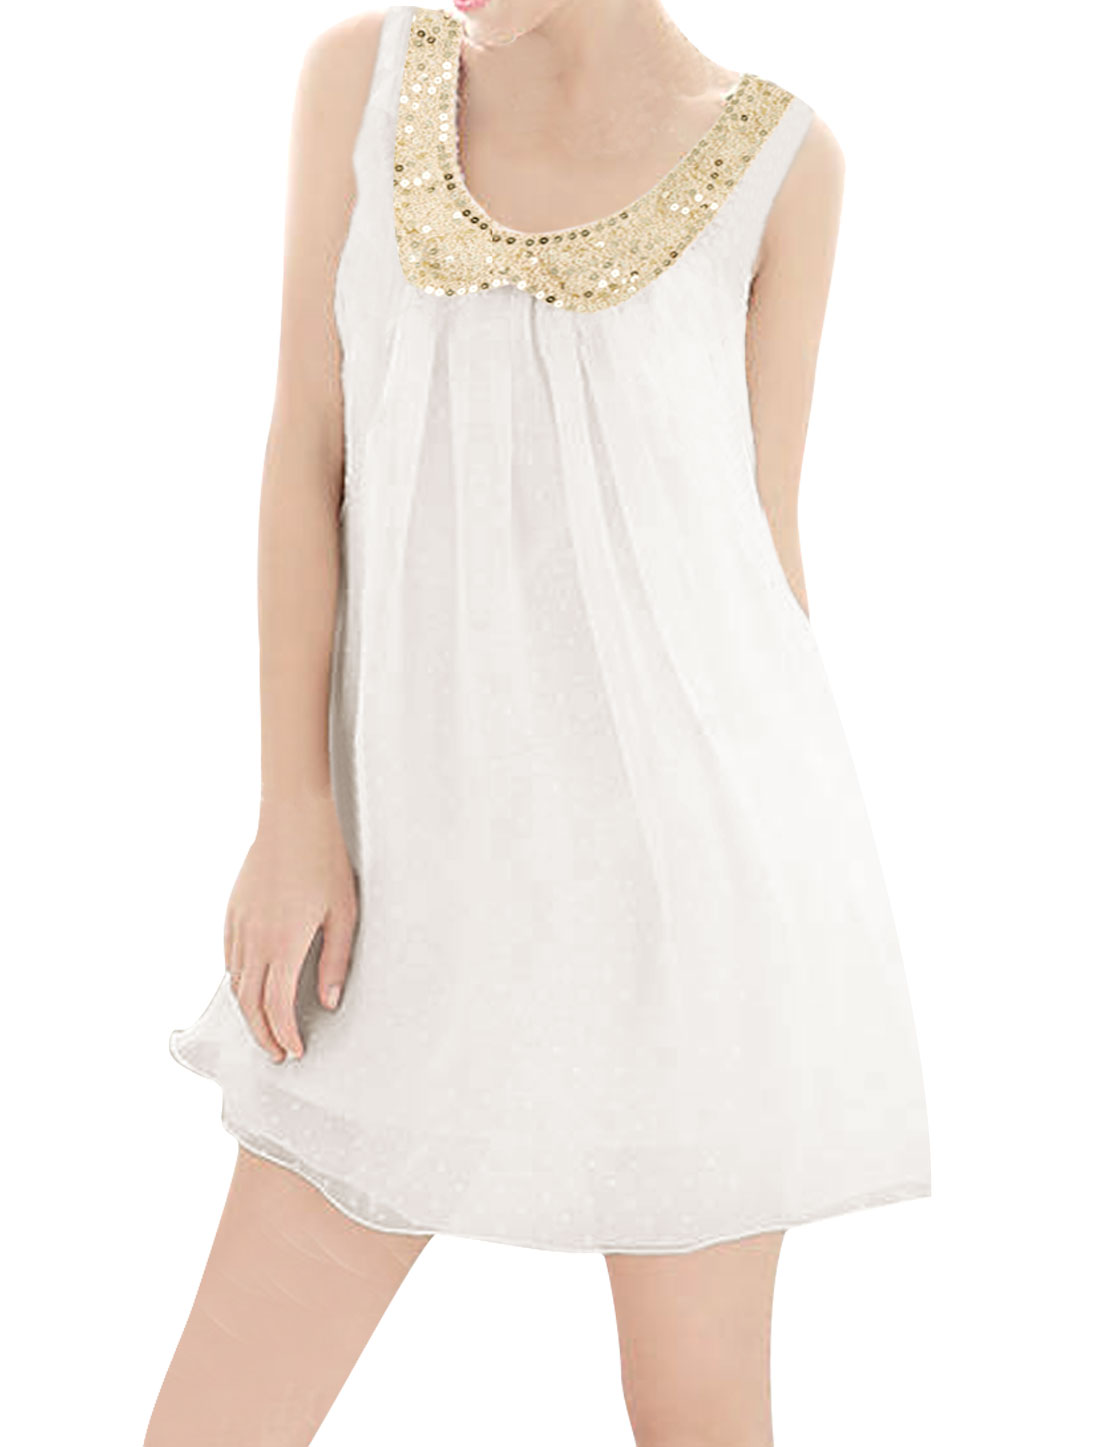 Ladies Chic Crochet Splice Doll Collar White Flare Mini Tank Dress S